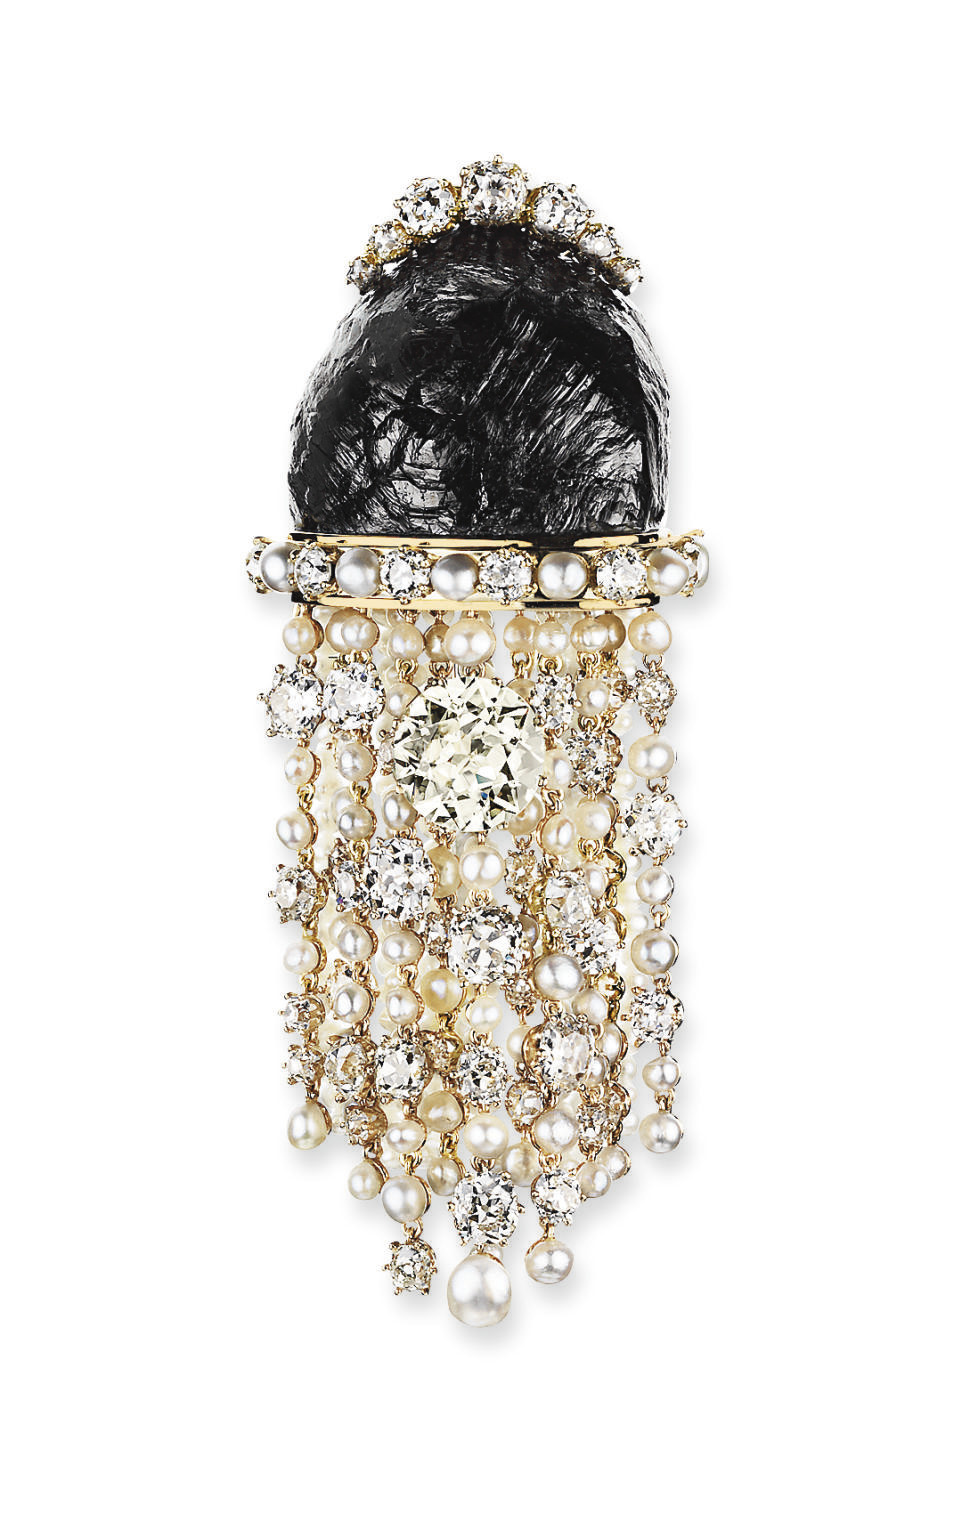 A COLOURED DIAMOND, DIAMOND AND PEARL BROOCH, BY LOMBARD